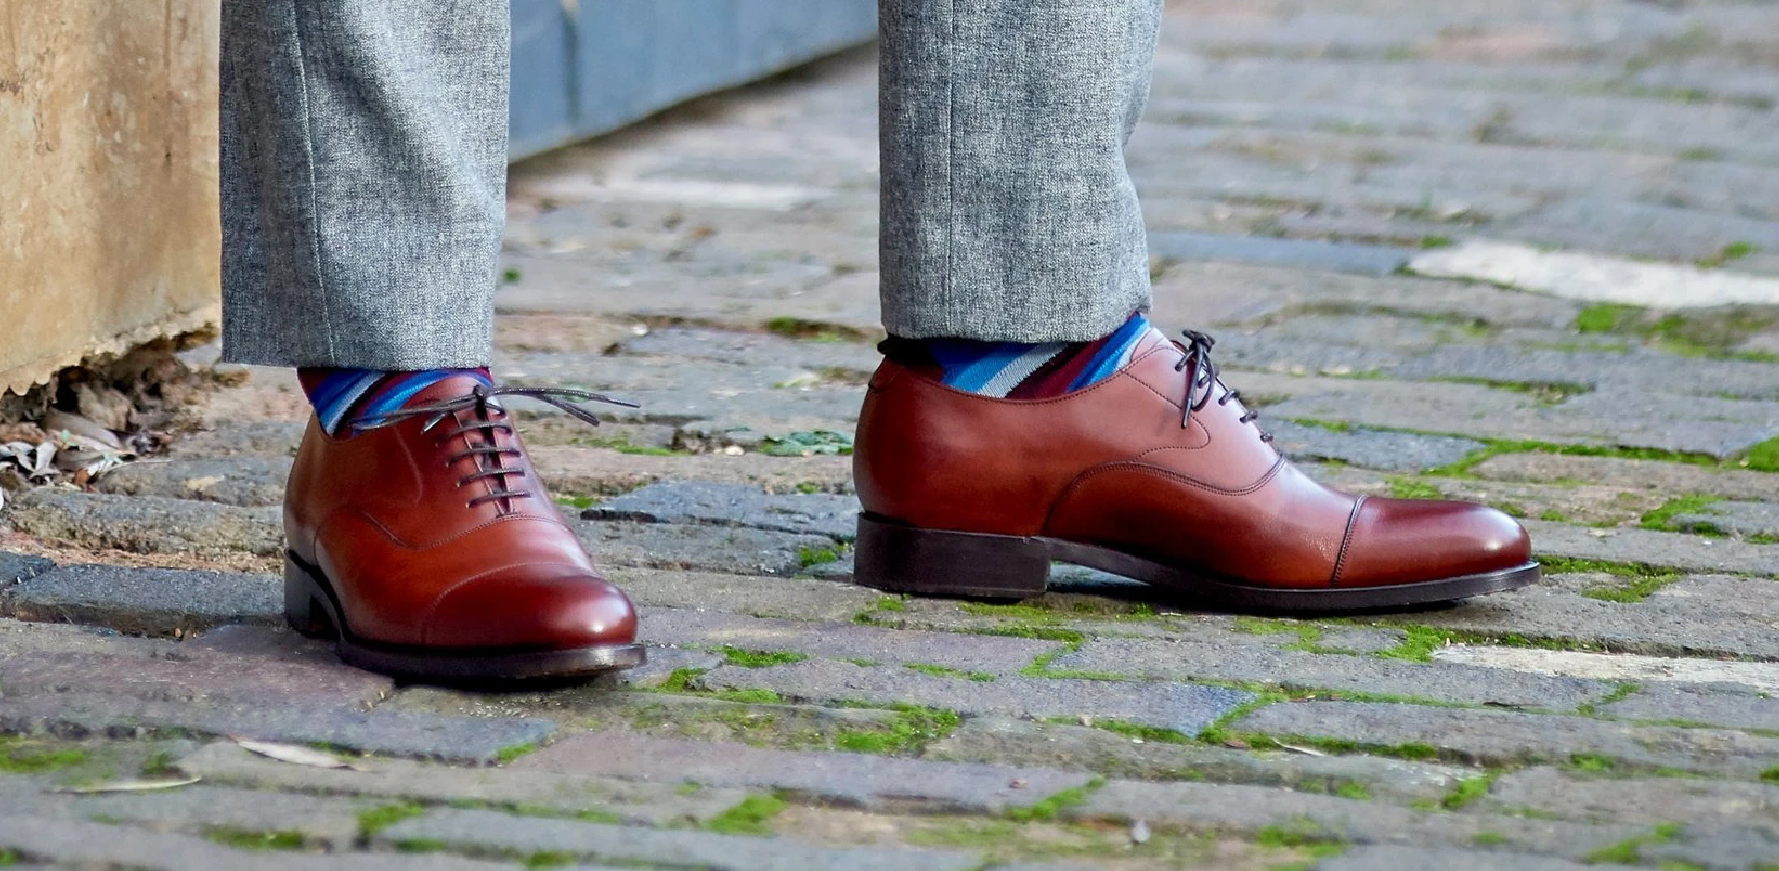 Malvern - Men's Handmade  Leather Oxford Shoes By Barker